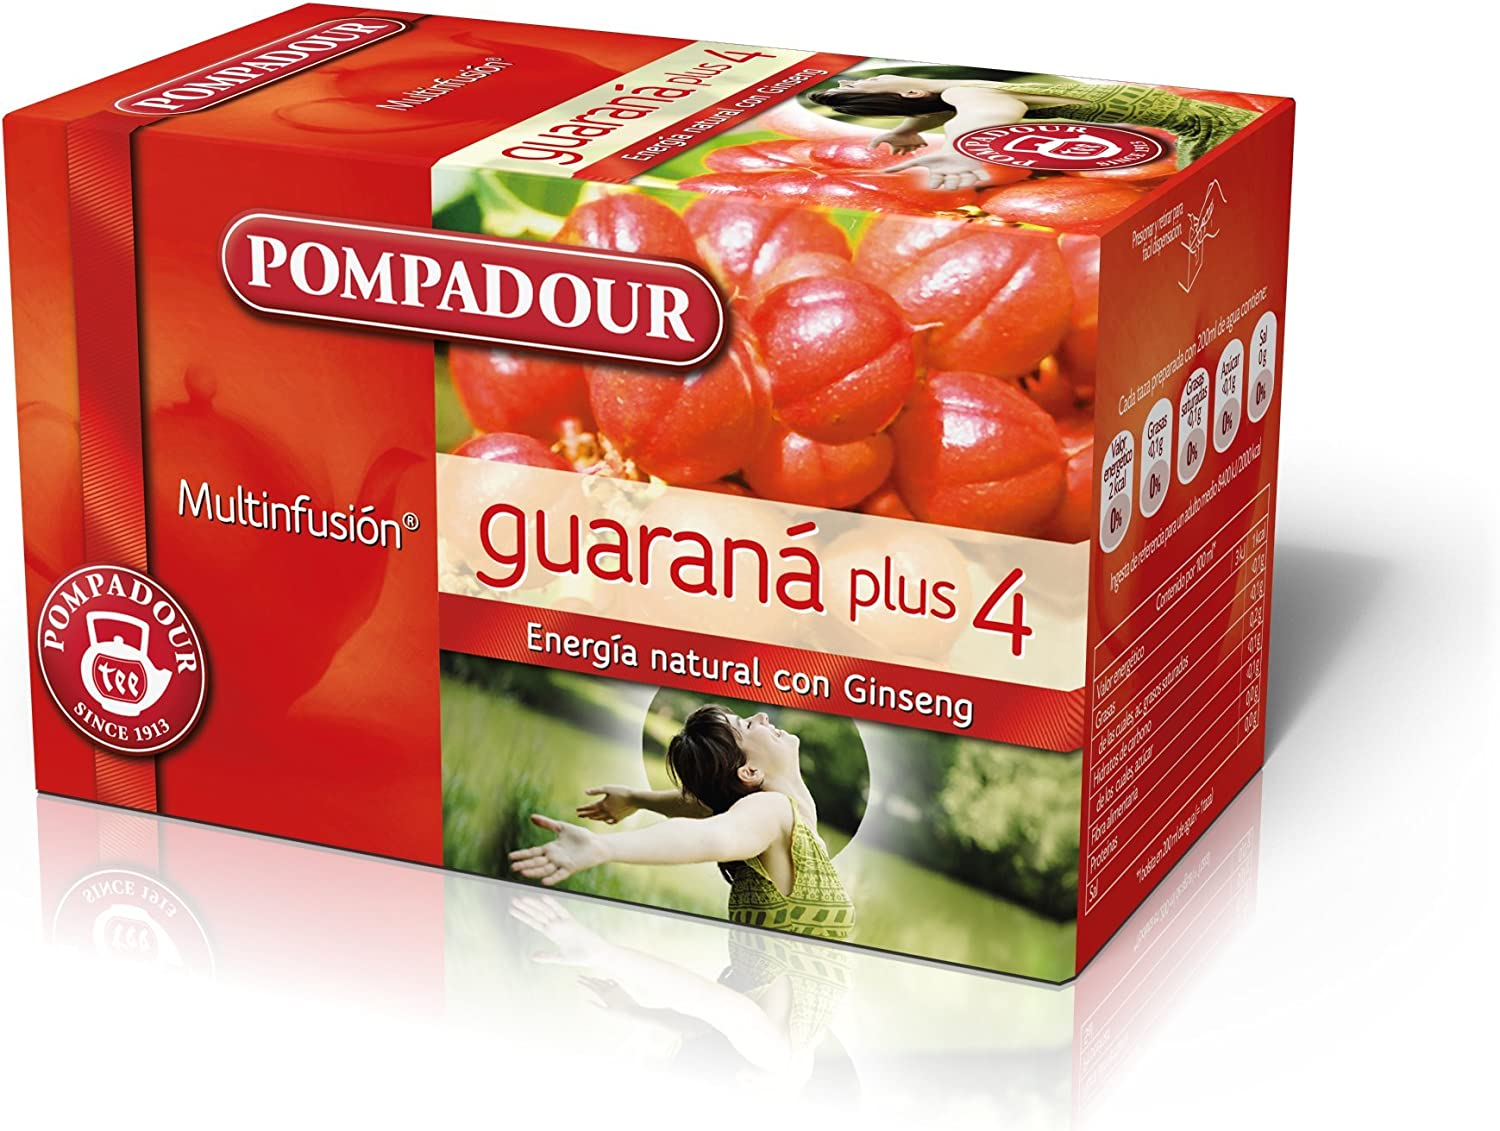 Pompadour Té Infusion Guaraná Plus 4 - Pack de 5 (Total: 100 ...